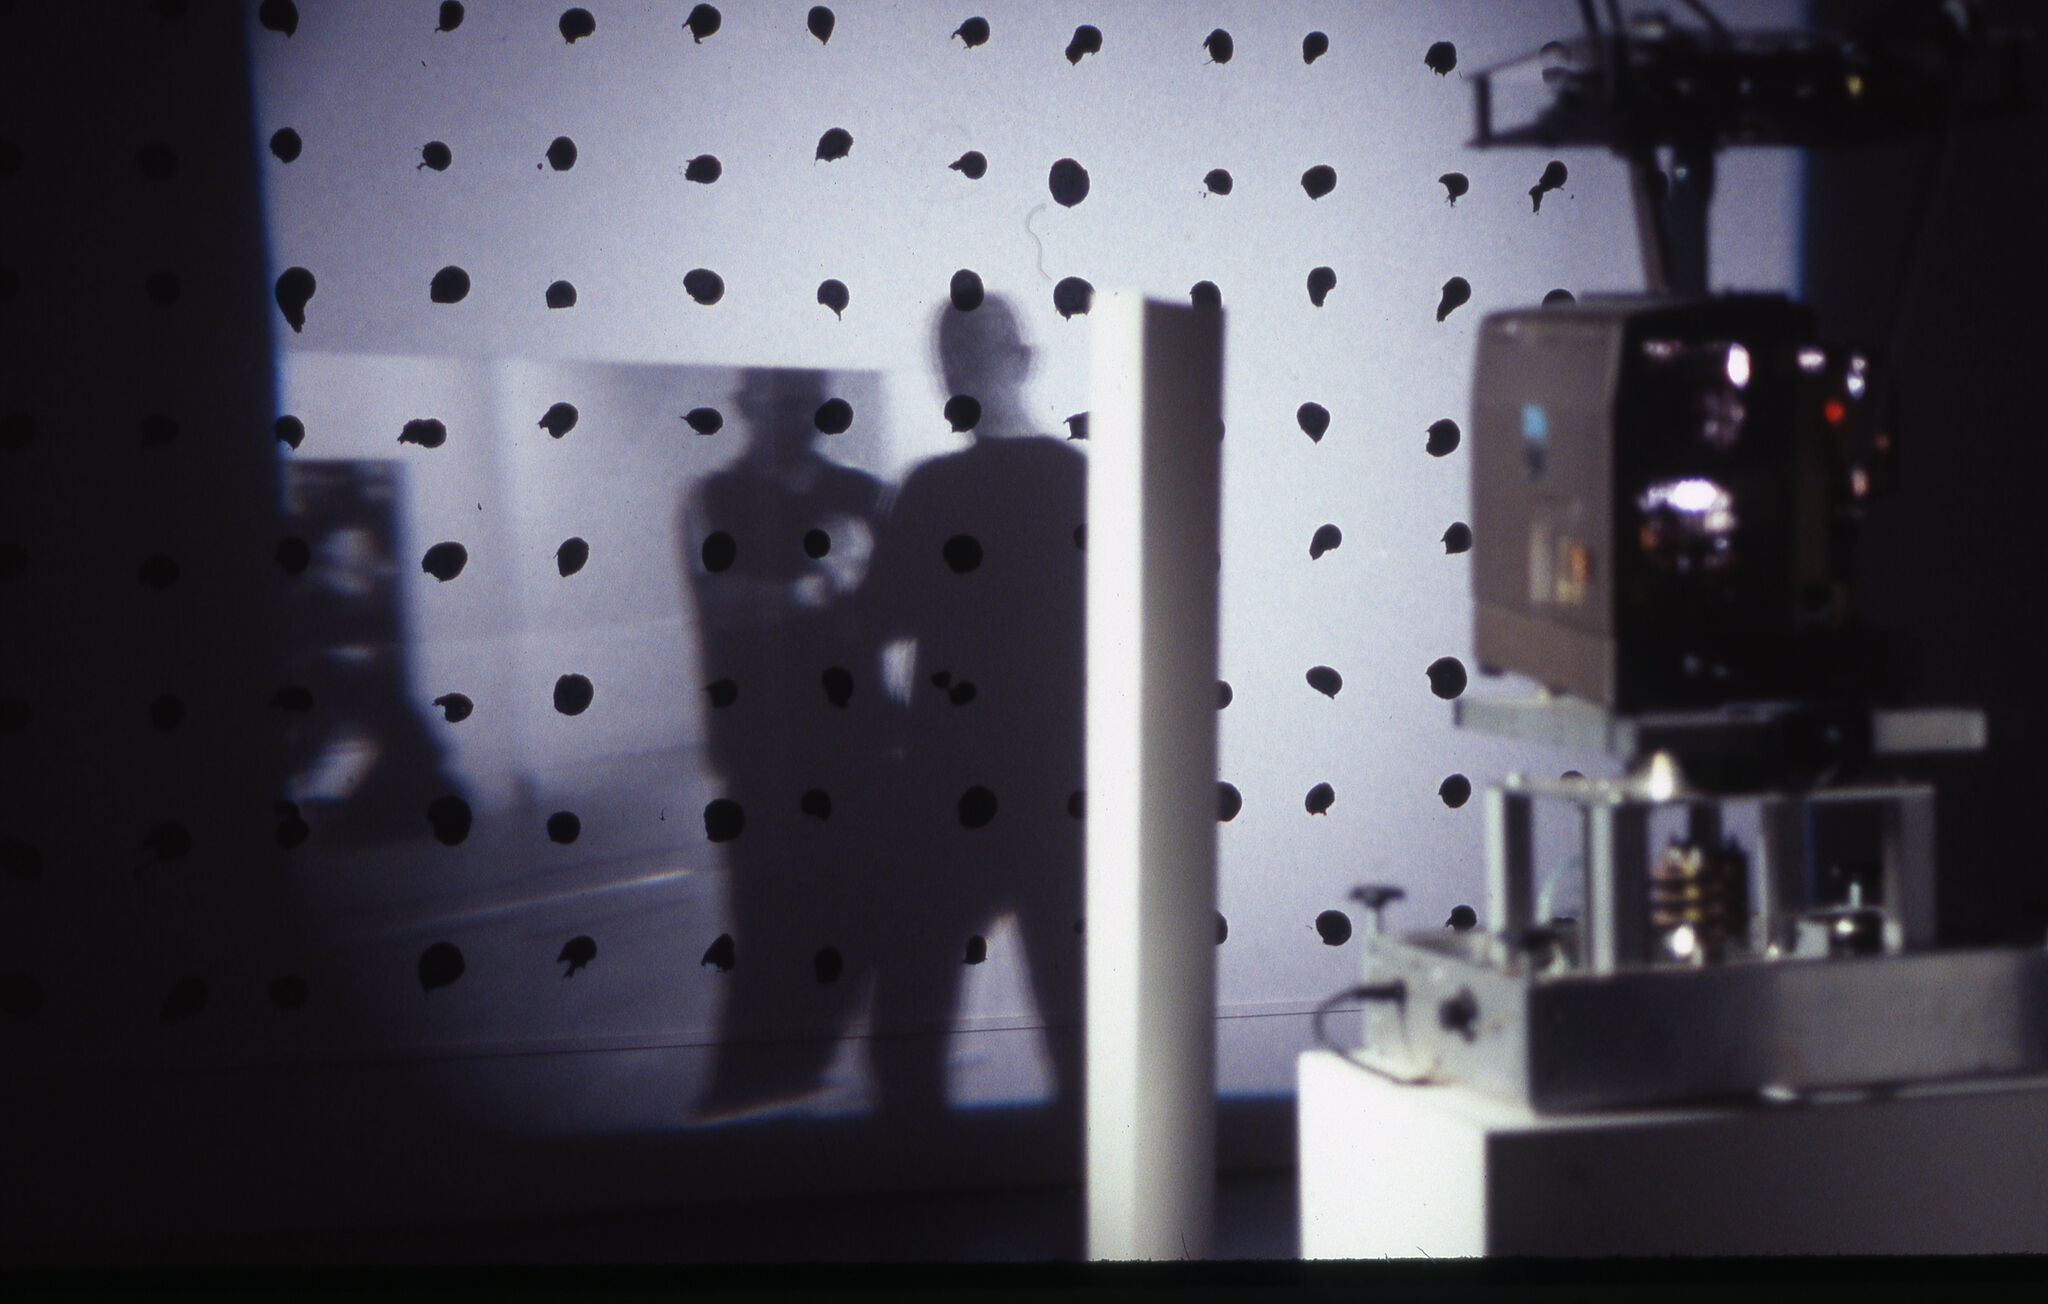 A projector projecting a black and white image on a white wall with black dots.